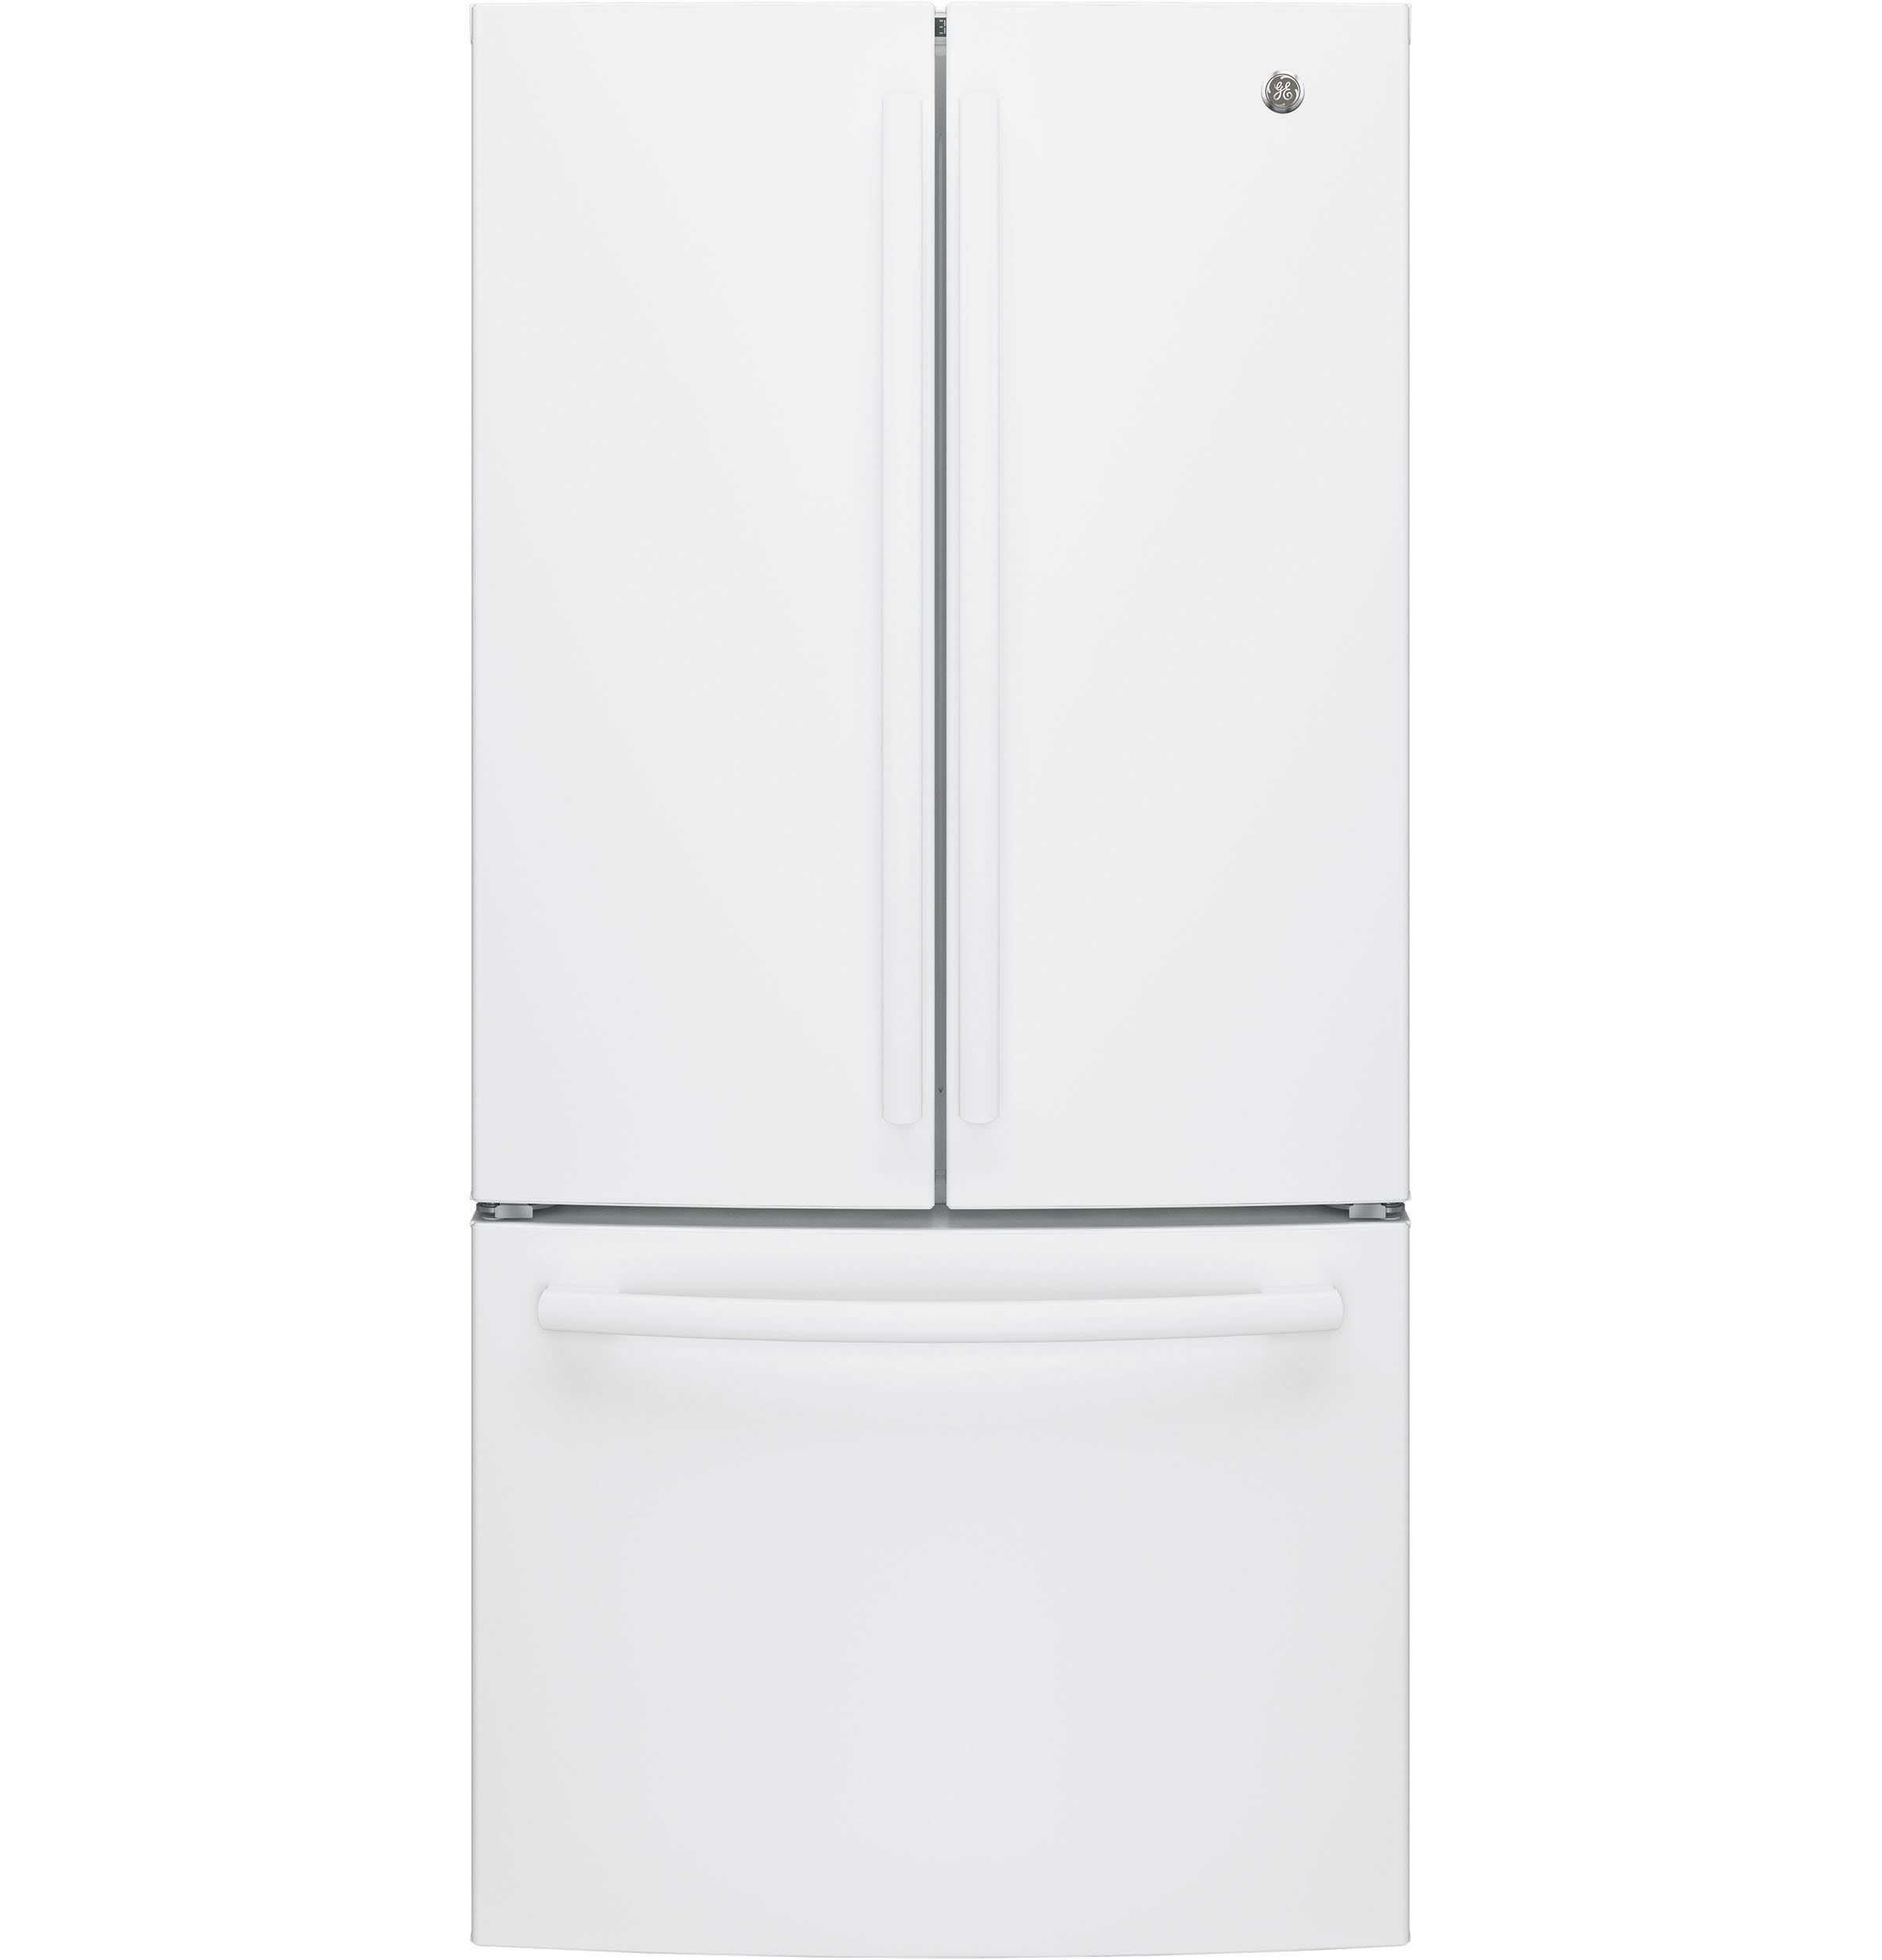 GE GE® ENERGY STAR® 18.6 Cu. Ft. Counter-Depth French-Door Refrigerator